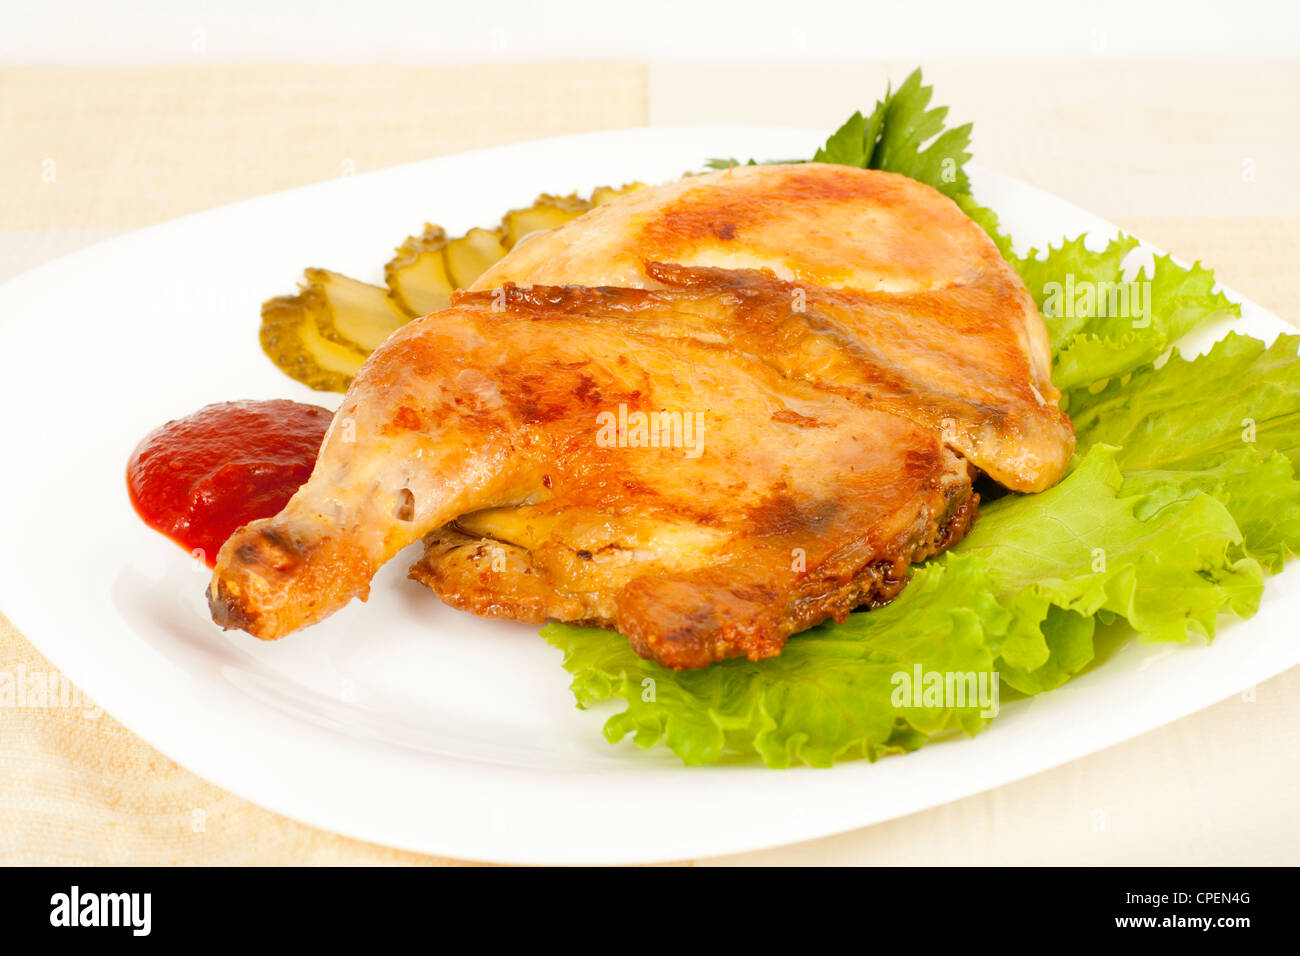 grilled chicken on a plate with pickled cucumber and tomato sauce - Stock Image